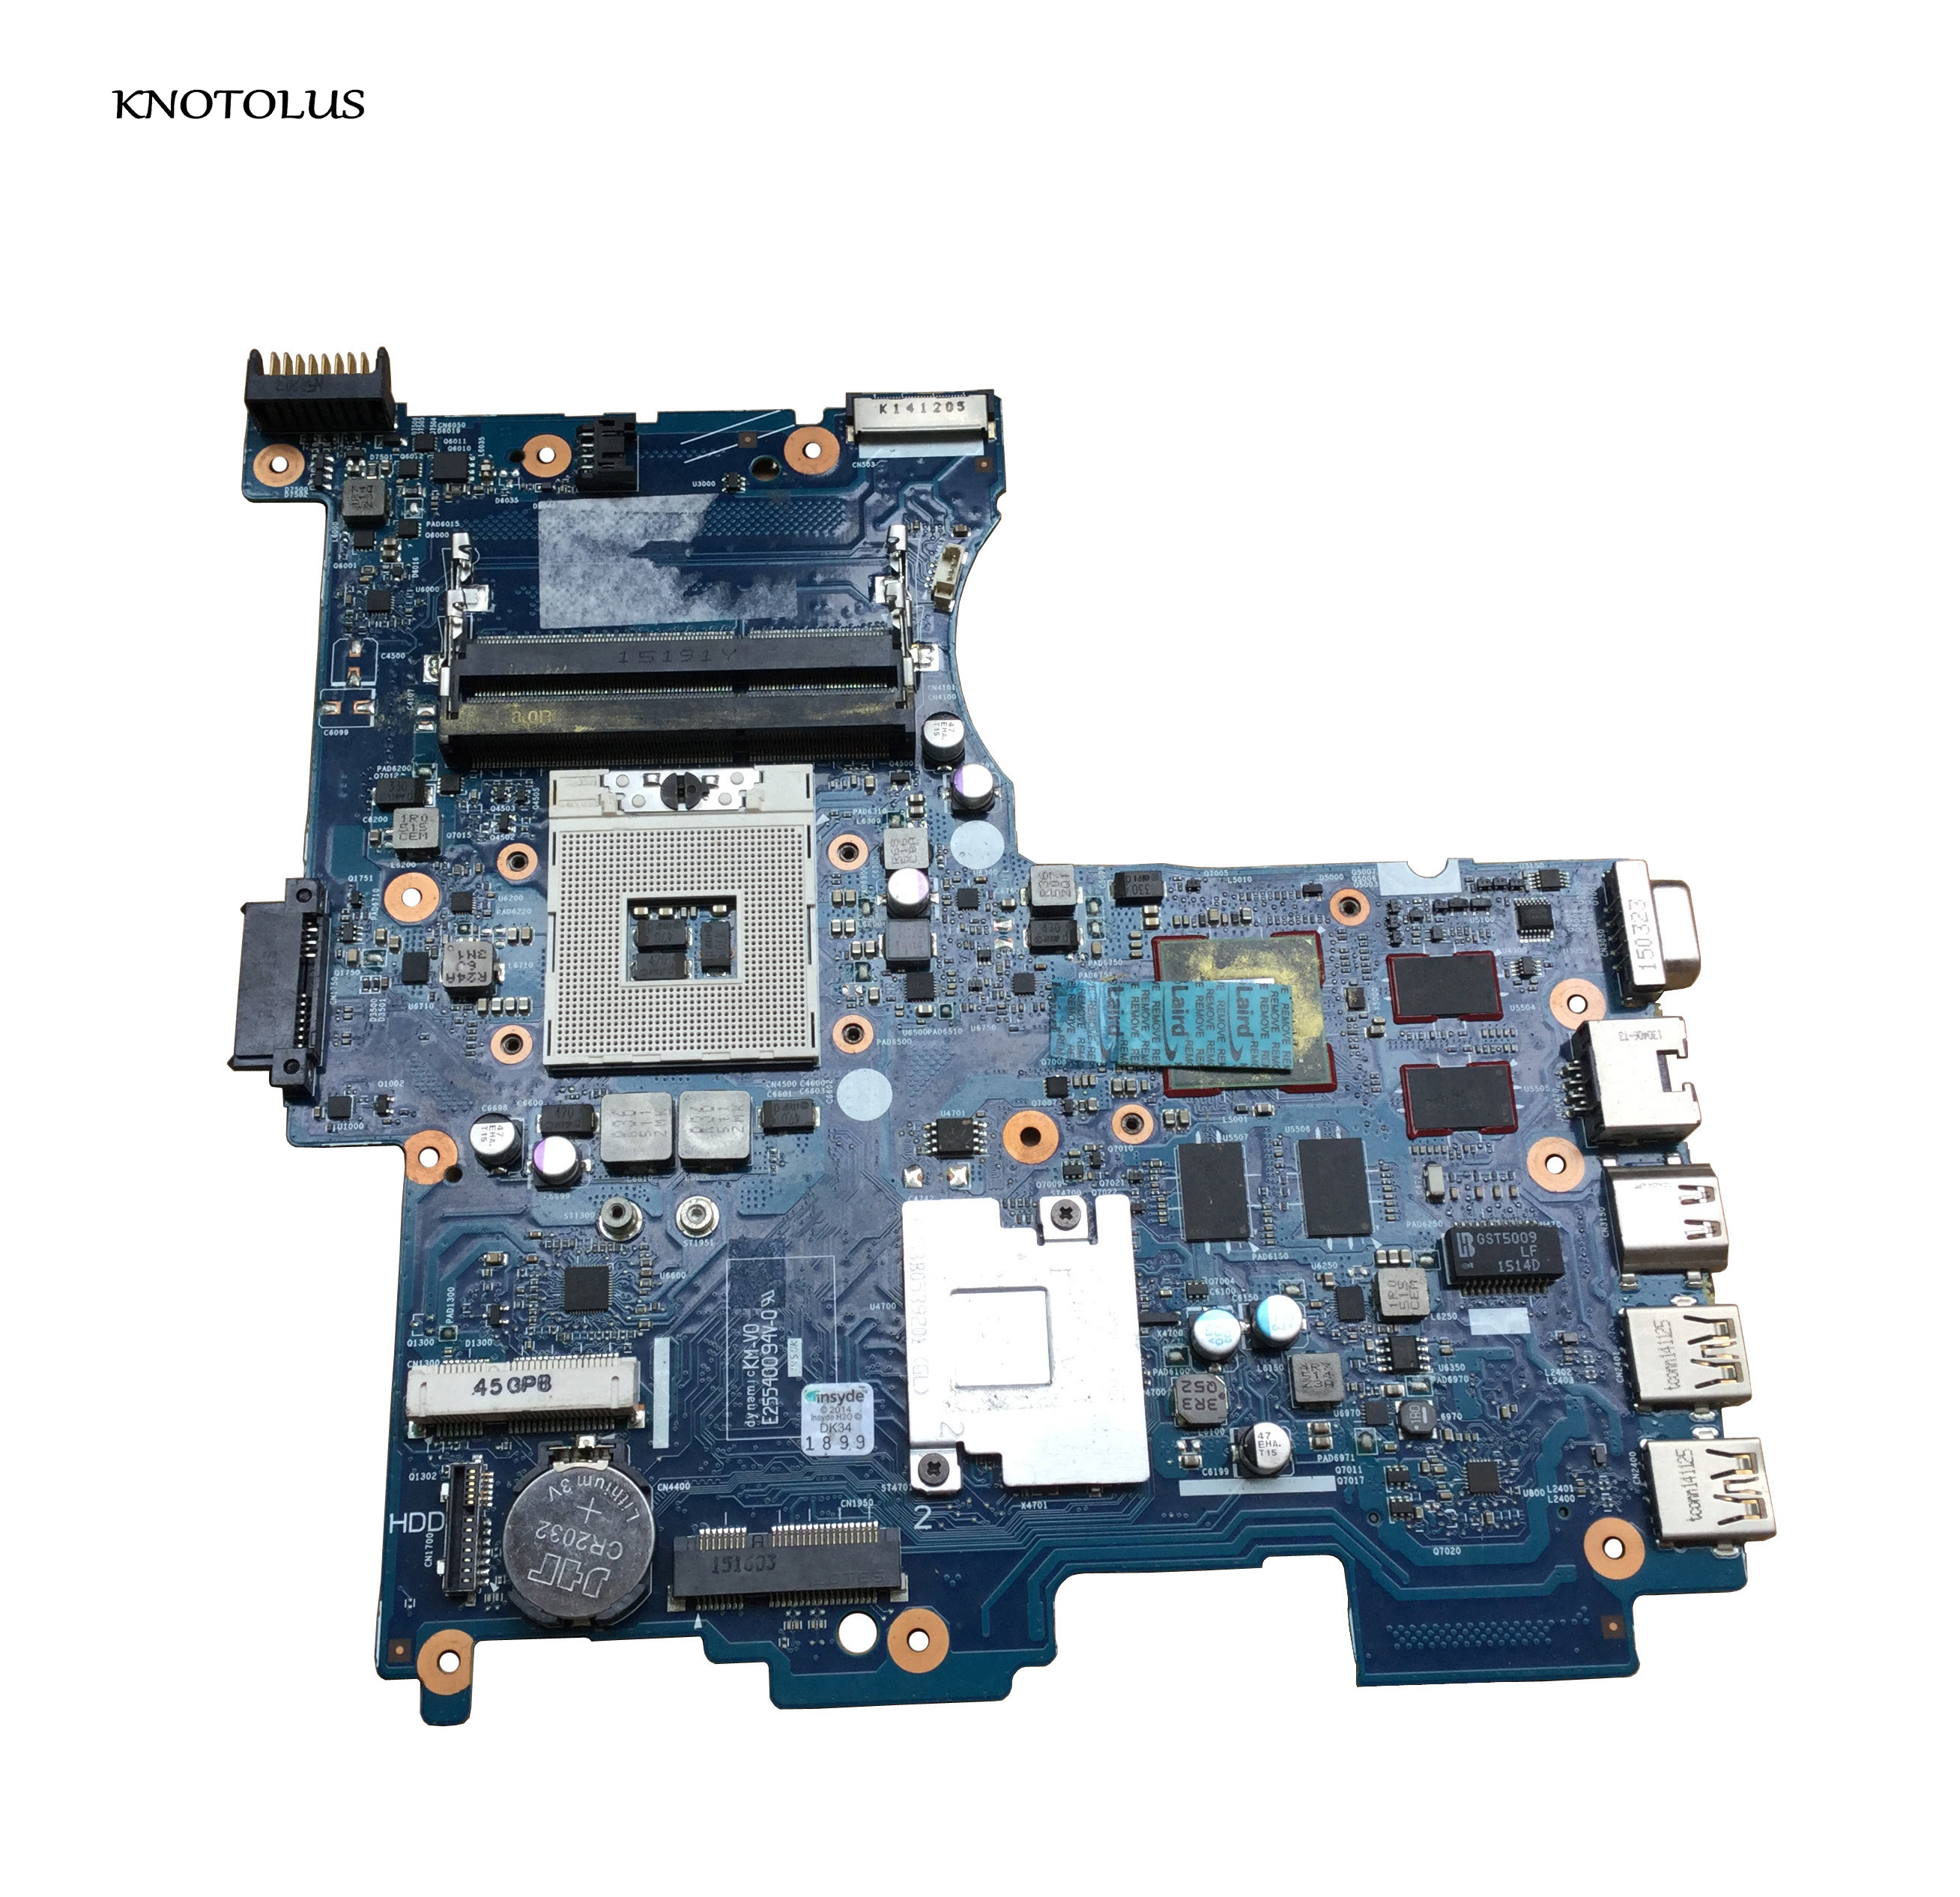 718445-501 For HP M4 motherboard 718445-001 Laptop motherboard 6050A2545601 Notebook PC 100% tested working